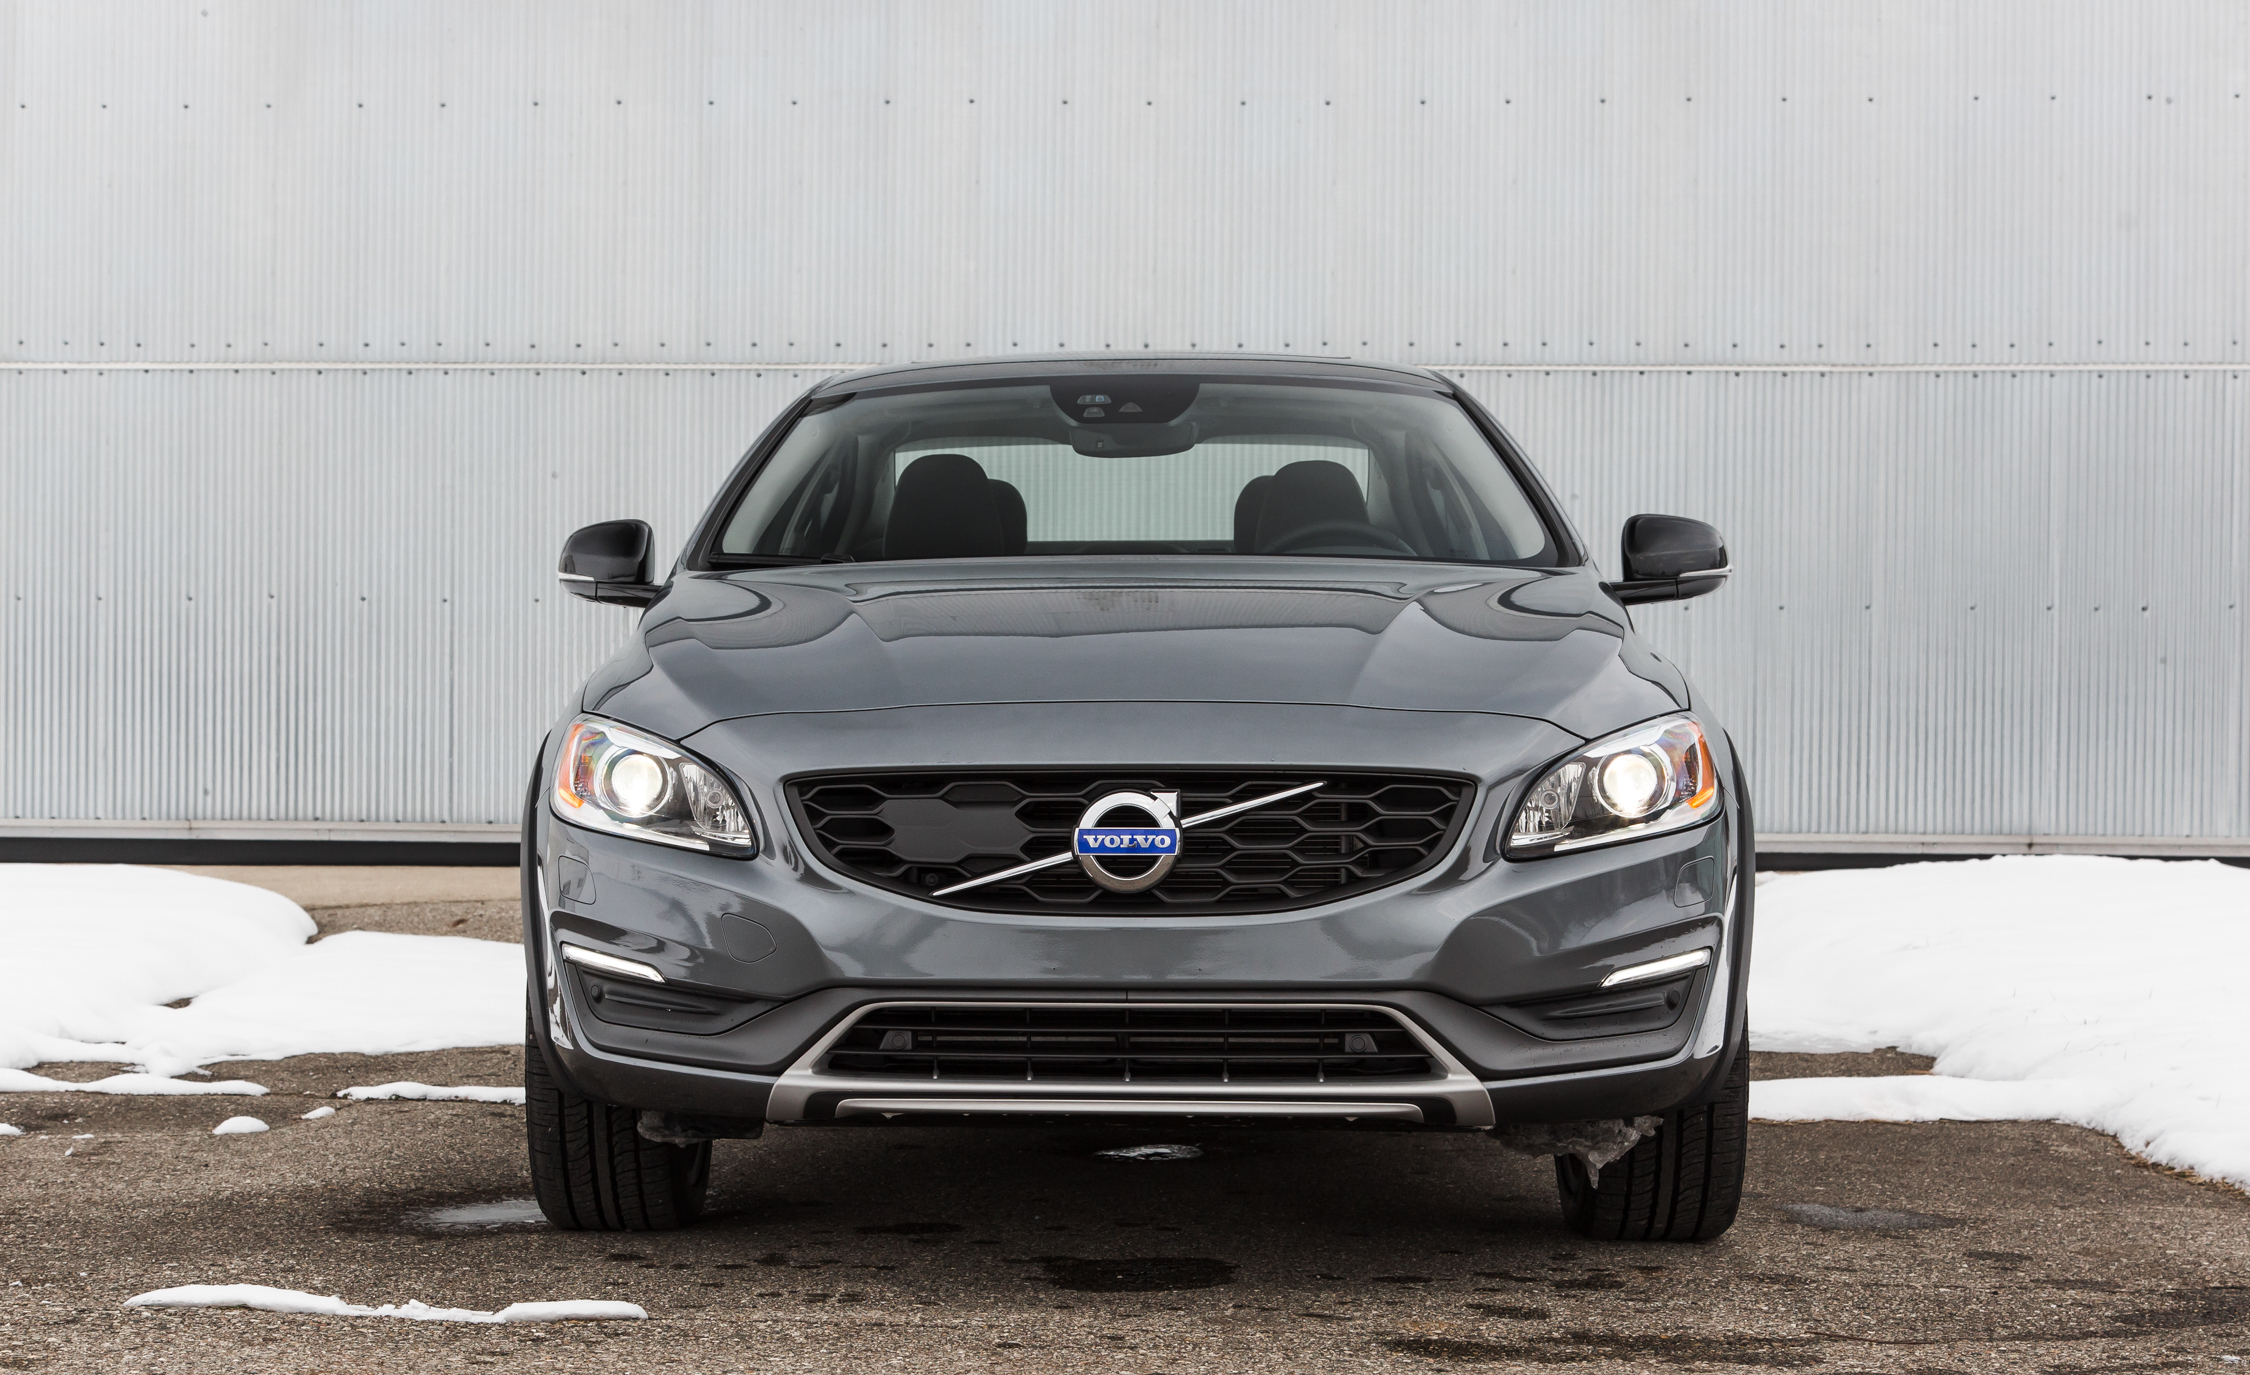 2016 Volvo S60 Cross Country Exterior Full Front (Photo 3 of 21)